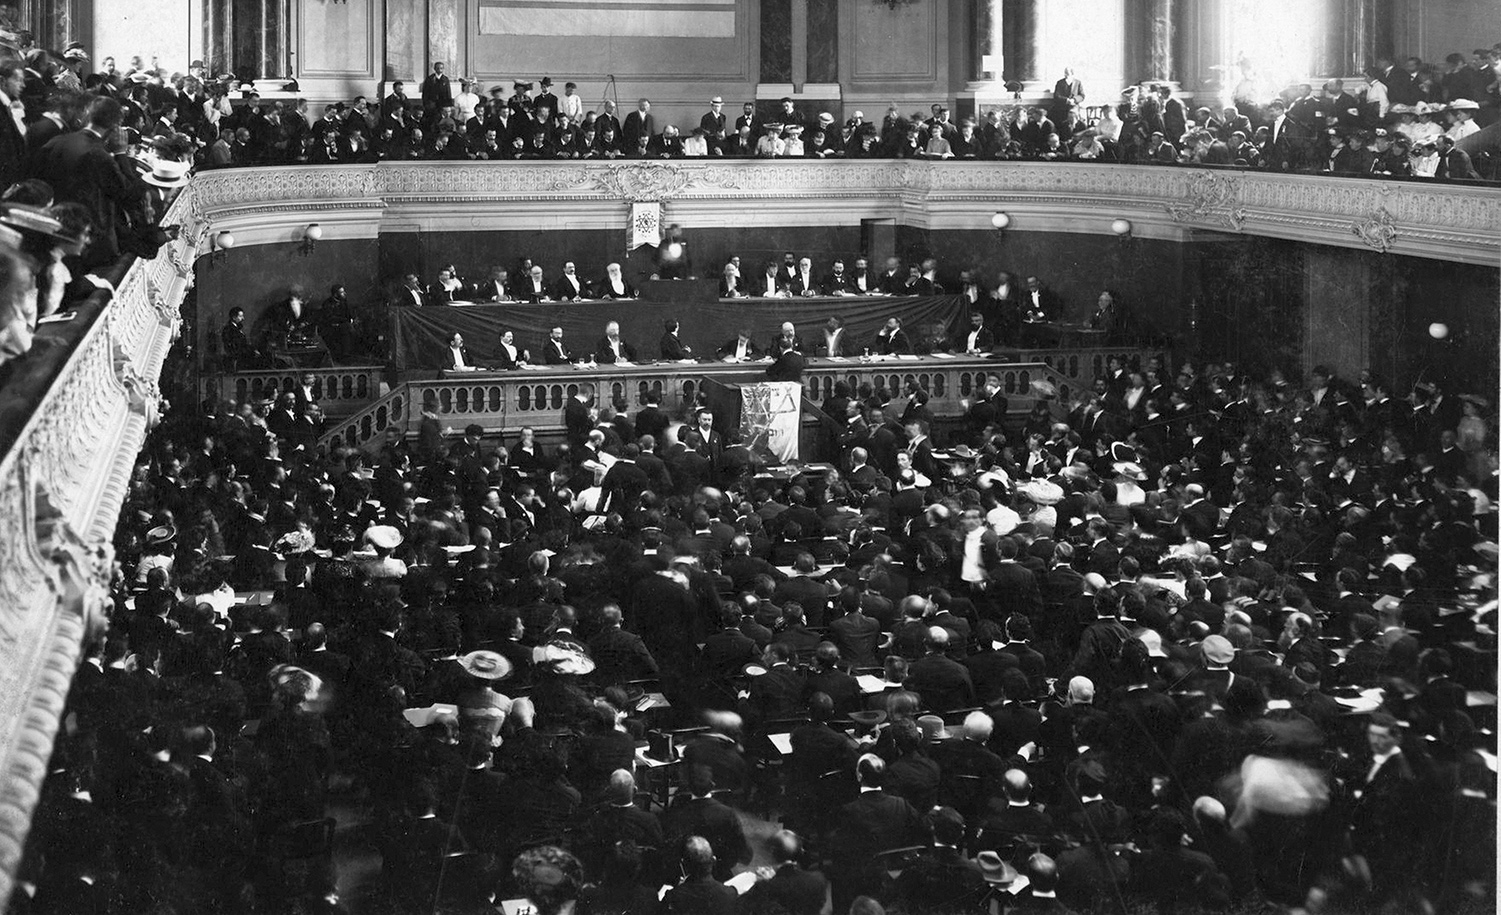 The First Zionist Congress, held in Basel, Switzerland in 1897. Photo12/Universal Images Group via Getty Images.